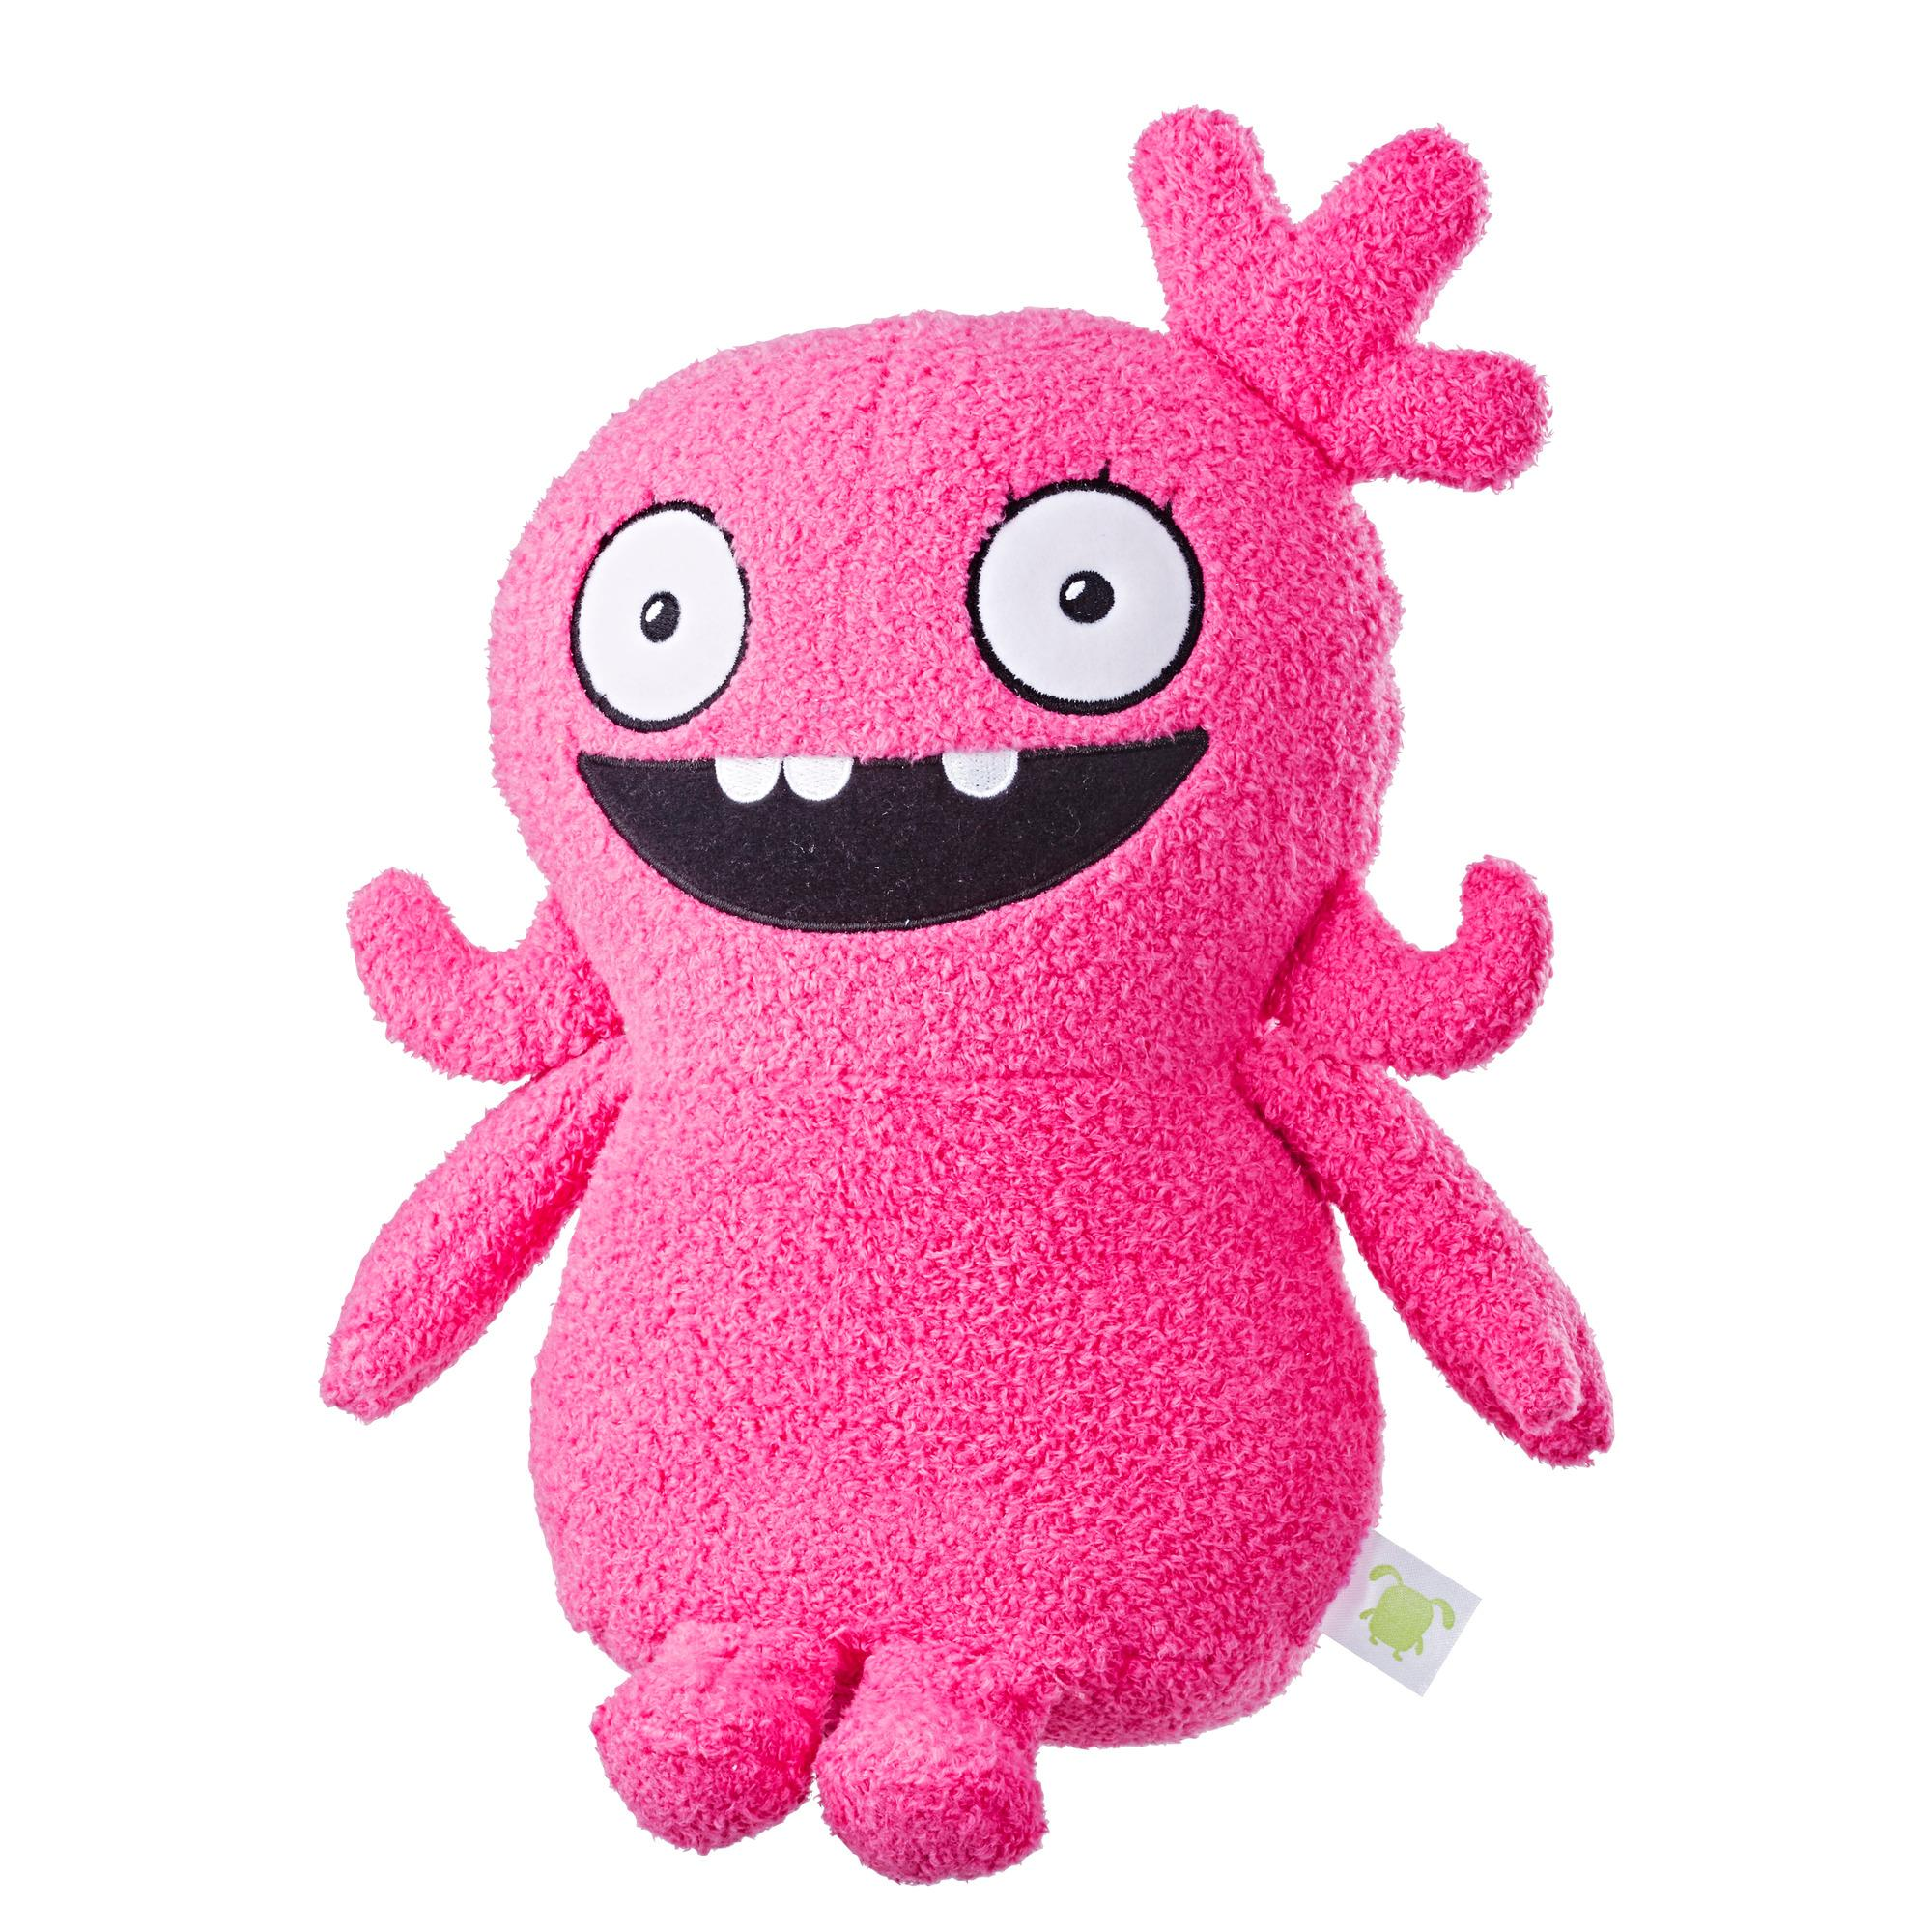 UglyDolls Feature Sounds Moxy, Stuffed Plush Toy that Talks, 11.5 inches tall